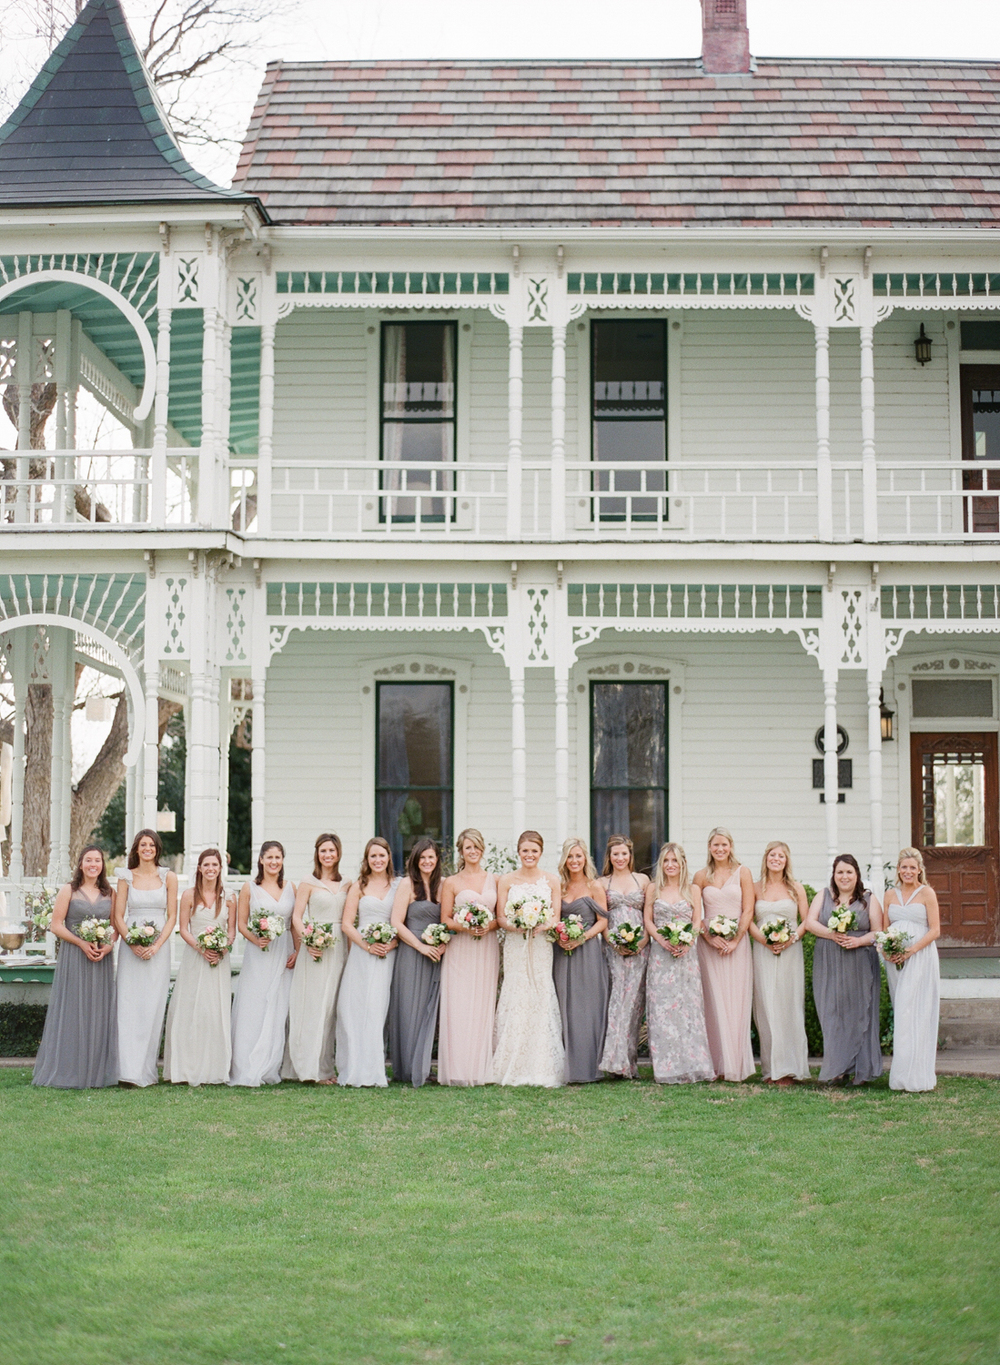 BARR_MANSION_WEDDING_MATTHEW_MOORE_PHOTOGRAPHY_00134.jpg